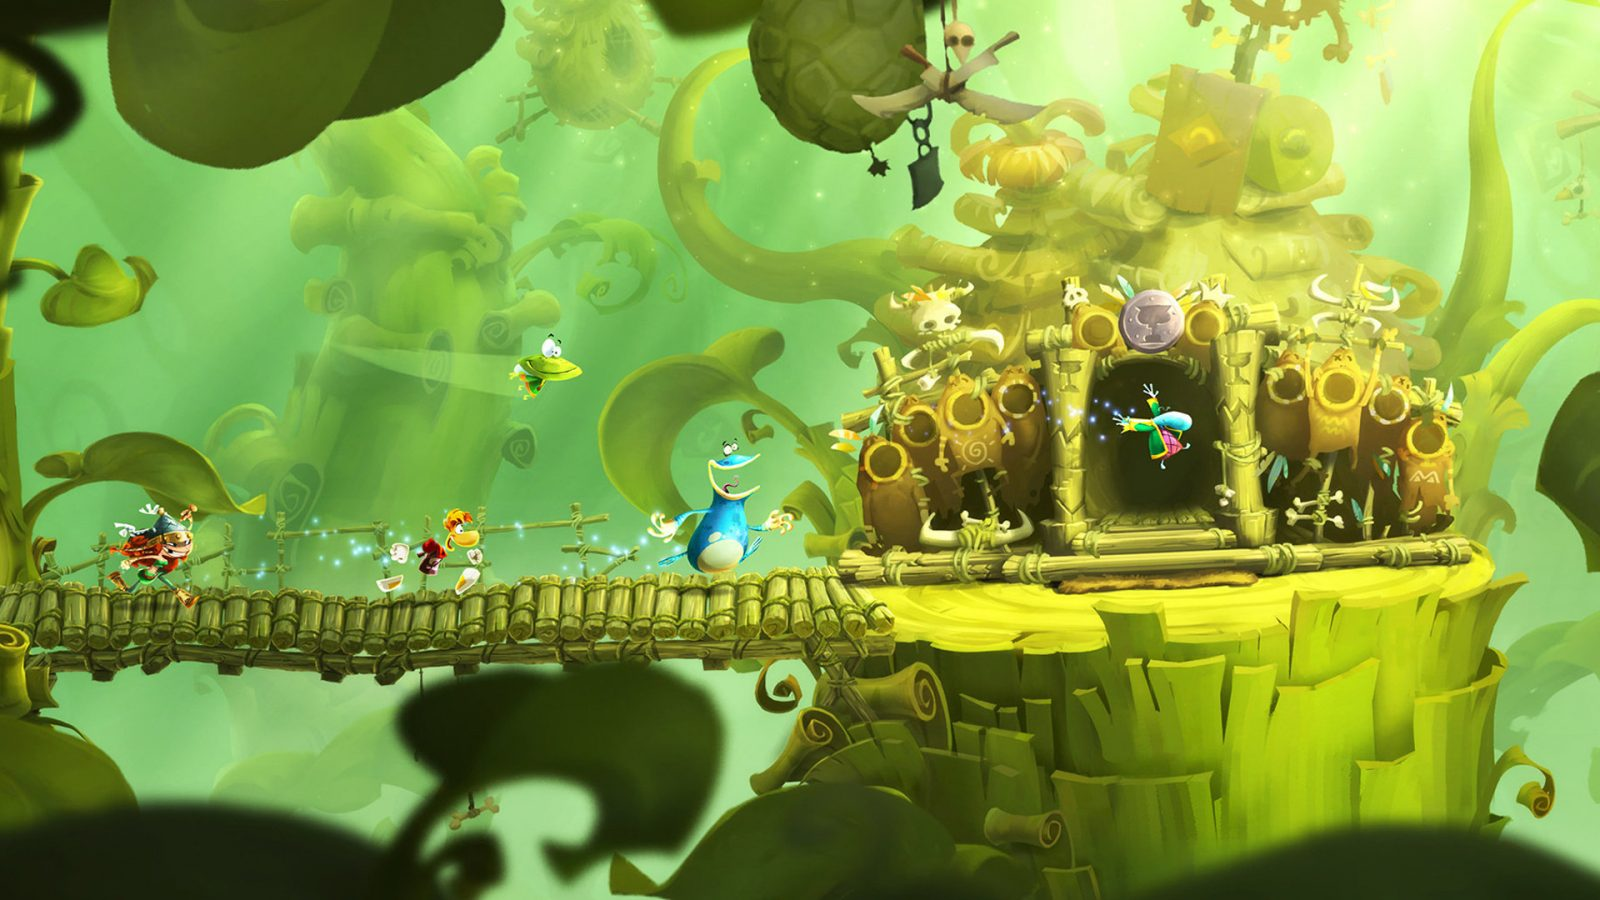 Free Games: Rayman Legends is free on the Epic Games store